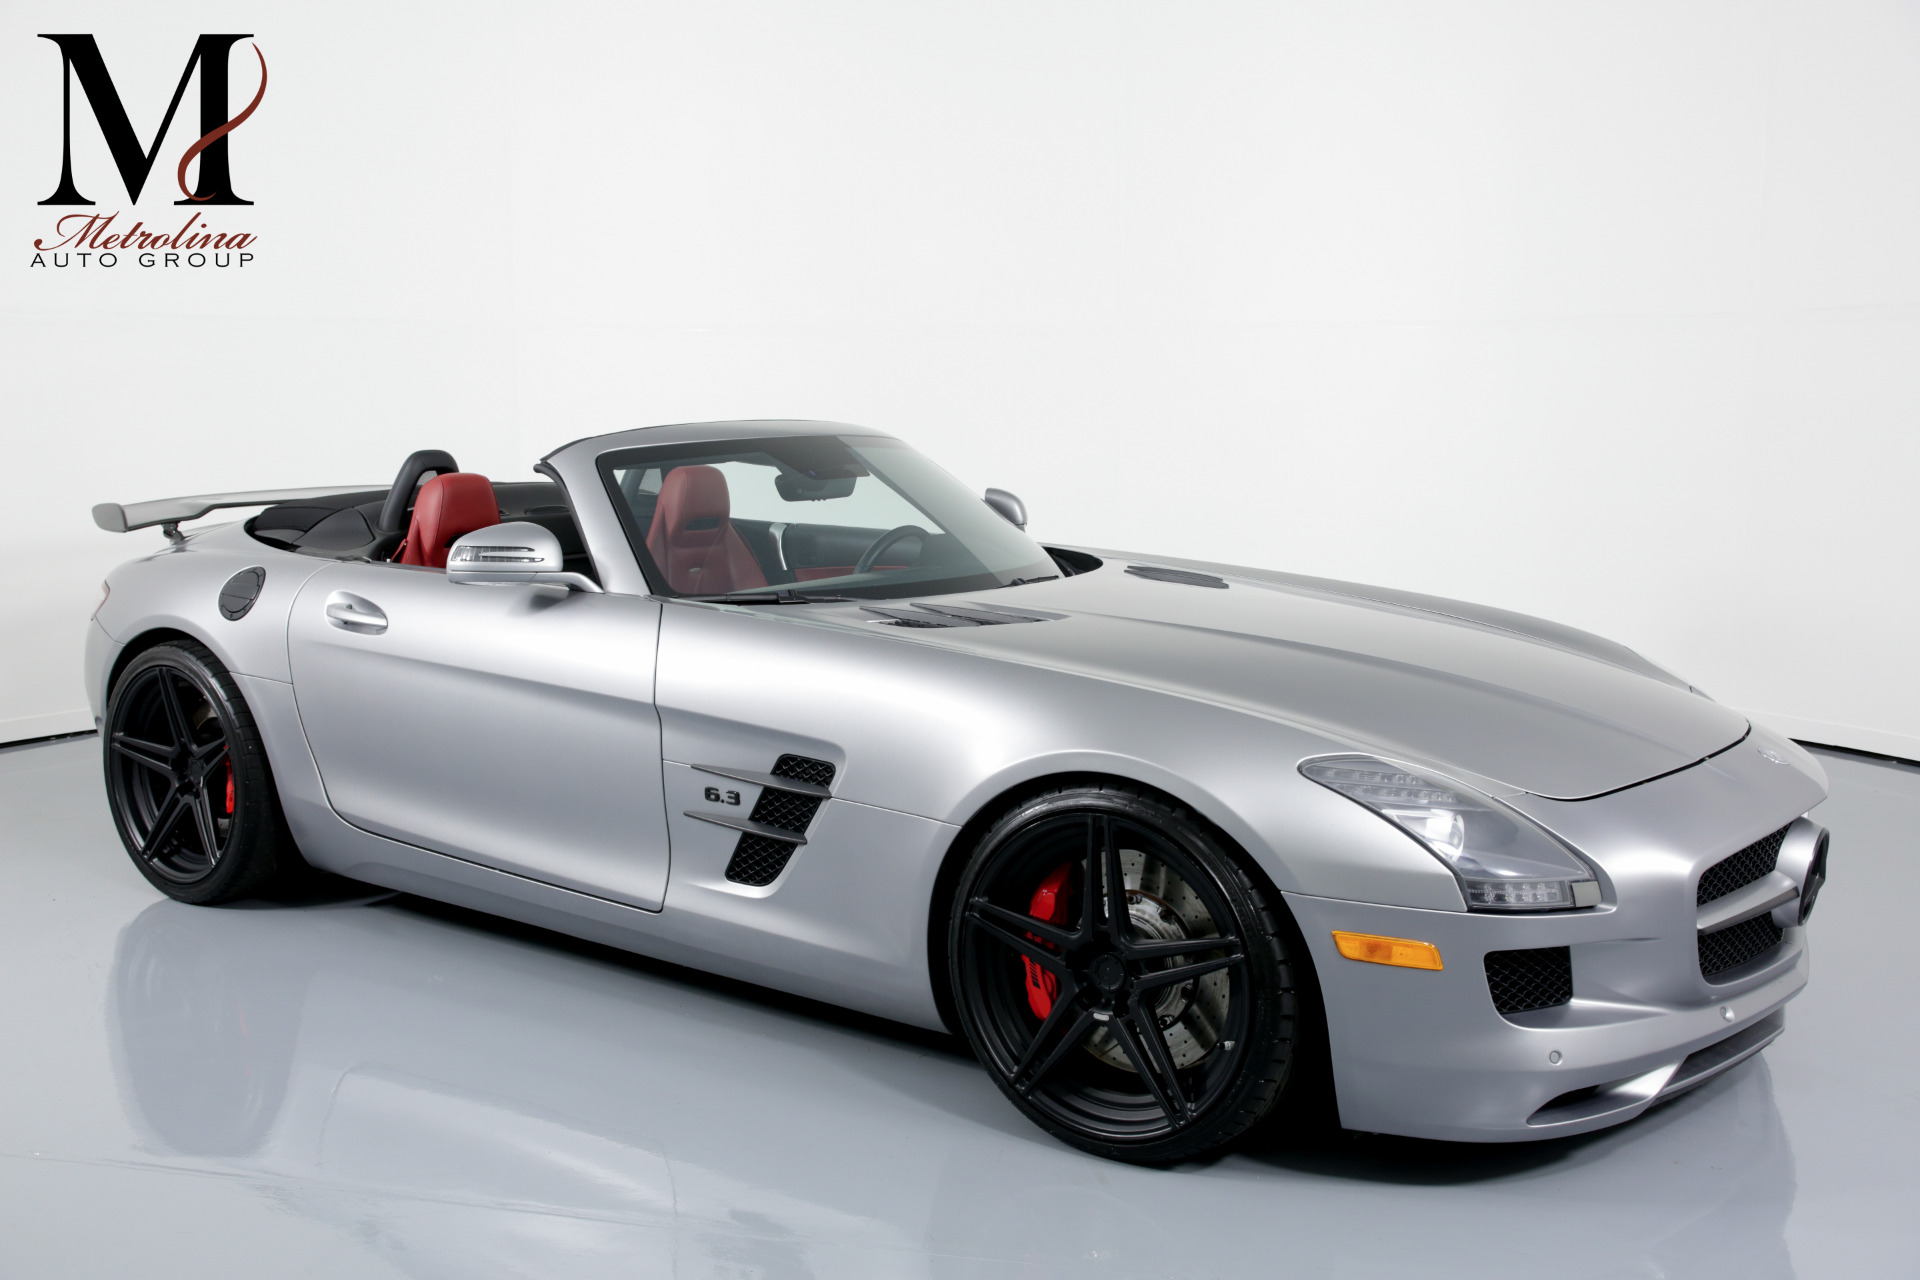 Used 2012 Mercedes-Benz SLS AMG for sale $139,996 at Metrolina Auto Group in Charlotte NC 28217 - 1